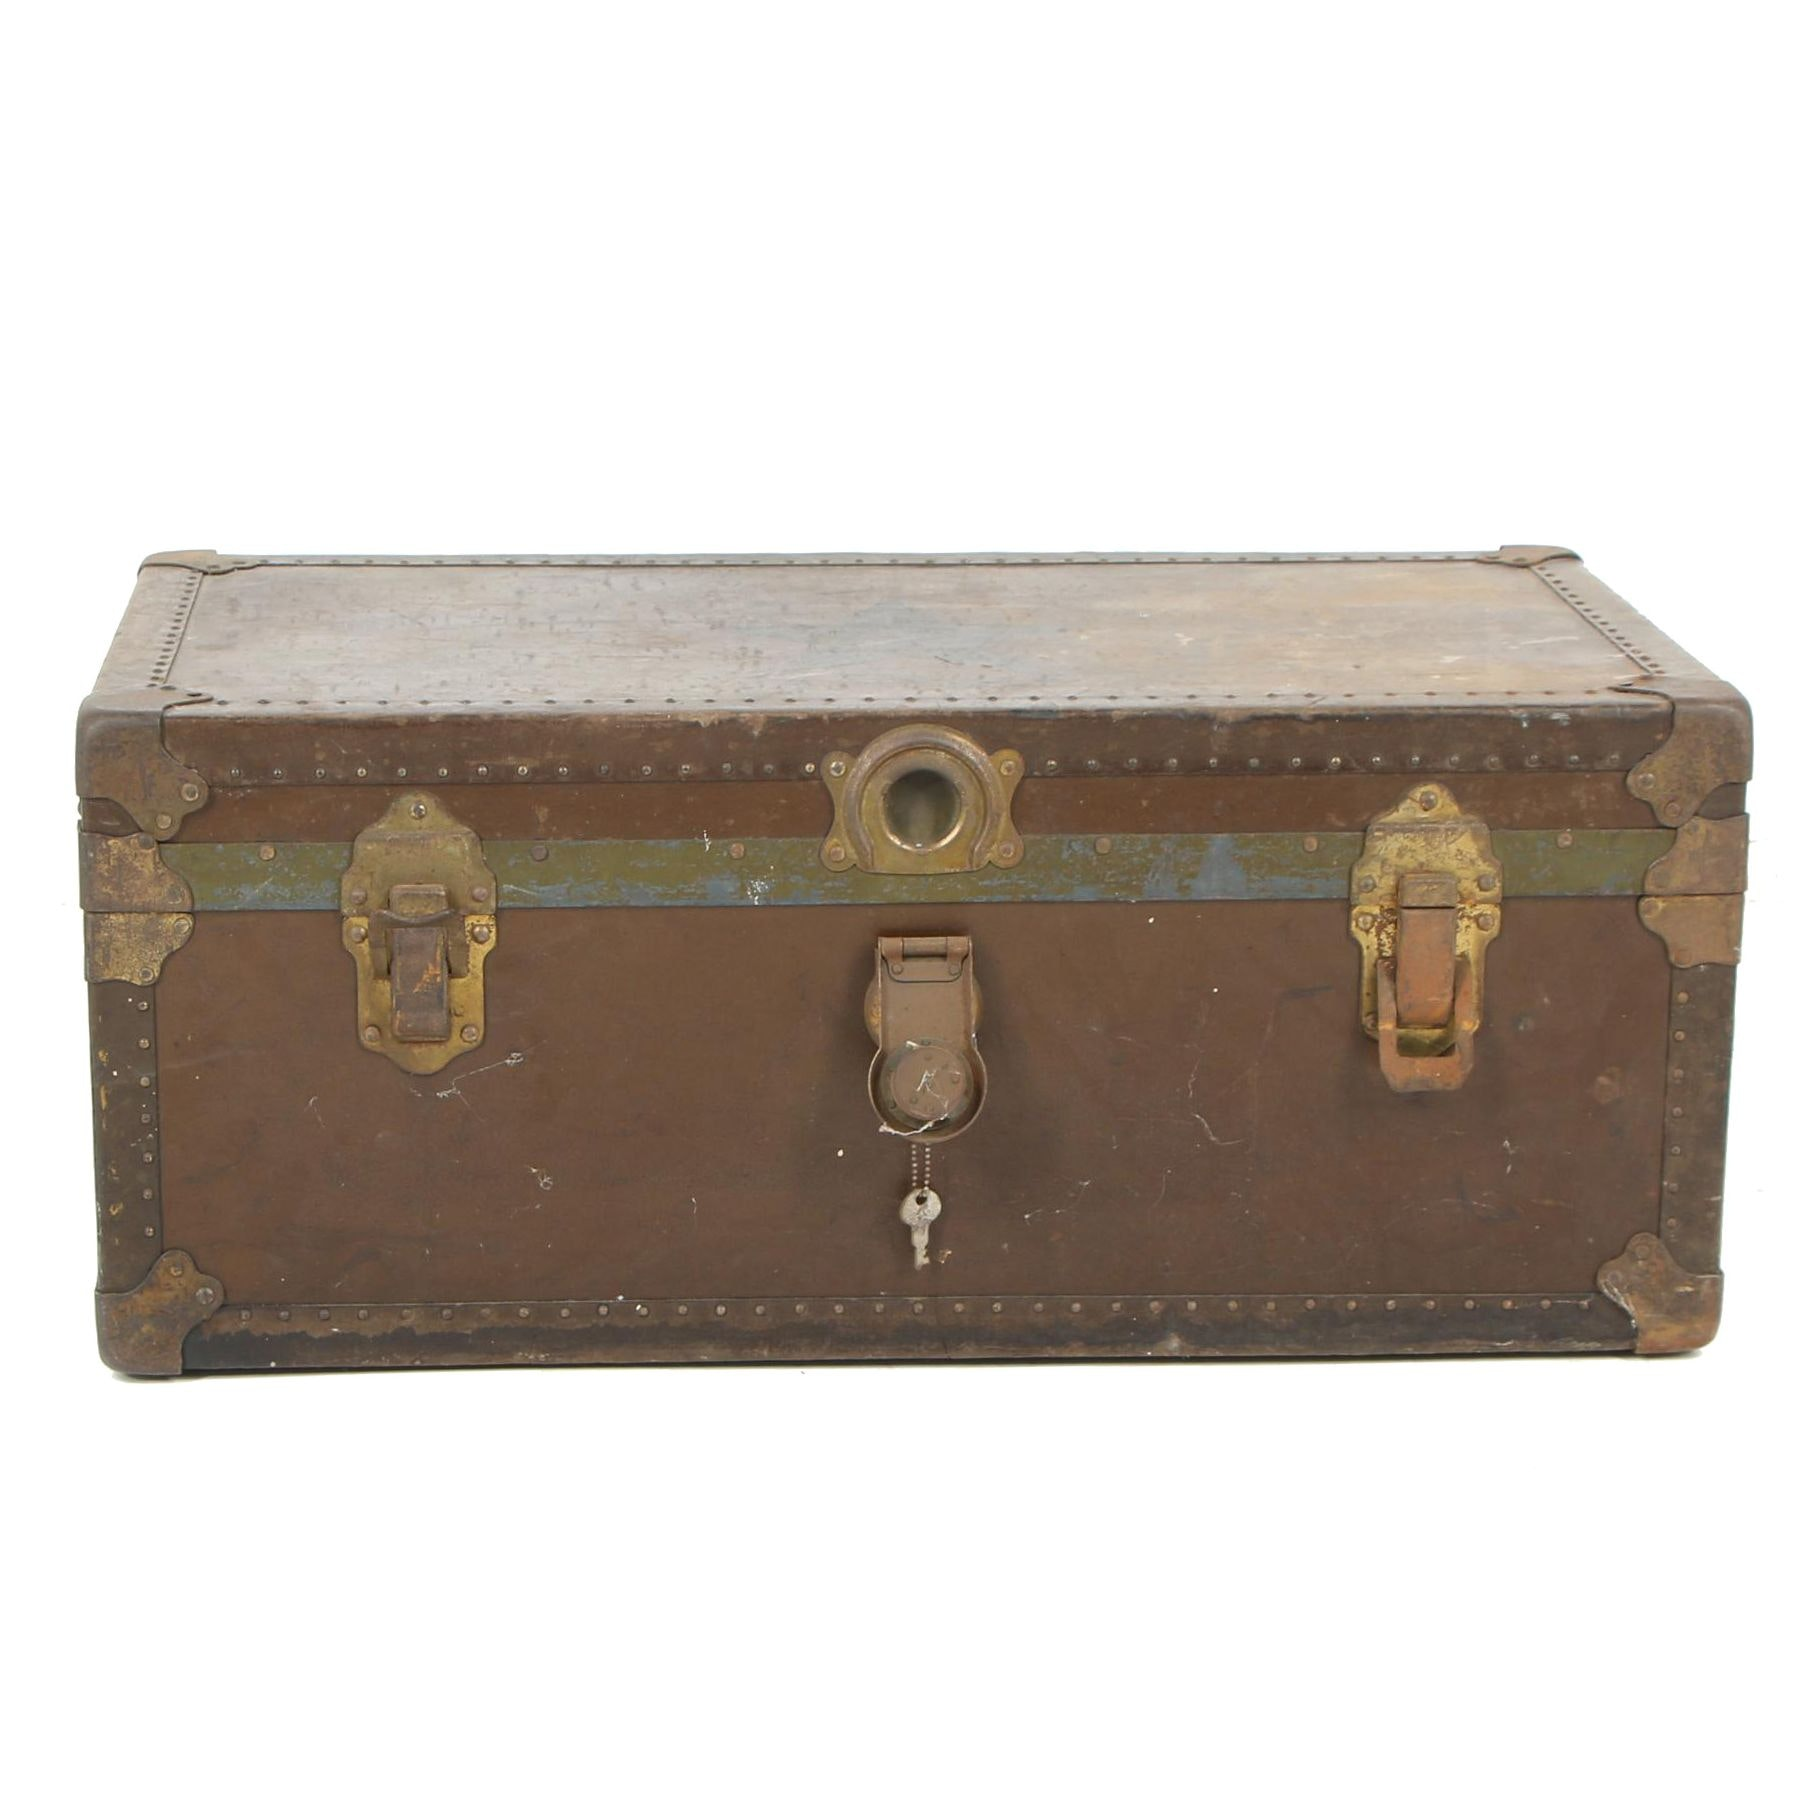 U.S. Naval Reserve Force Wood and Metal Storage Trunk, Early 20th Century